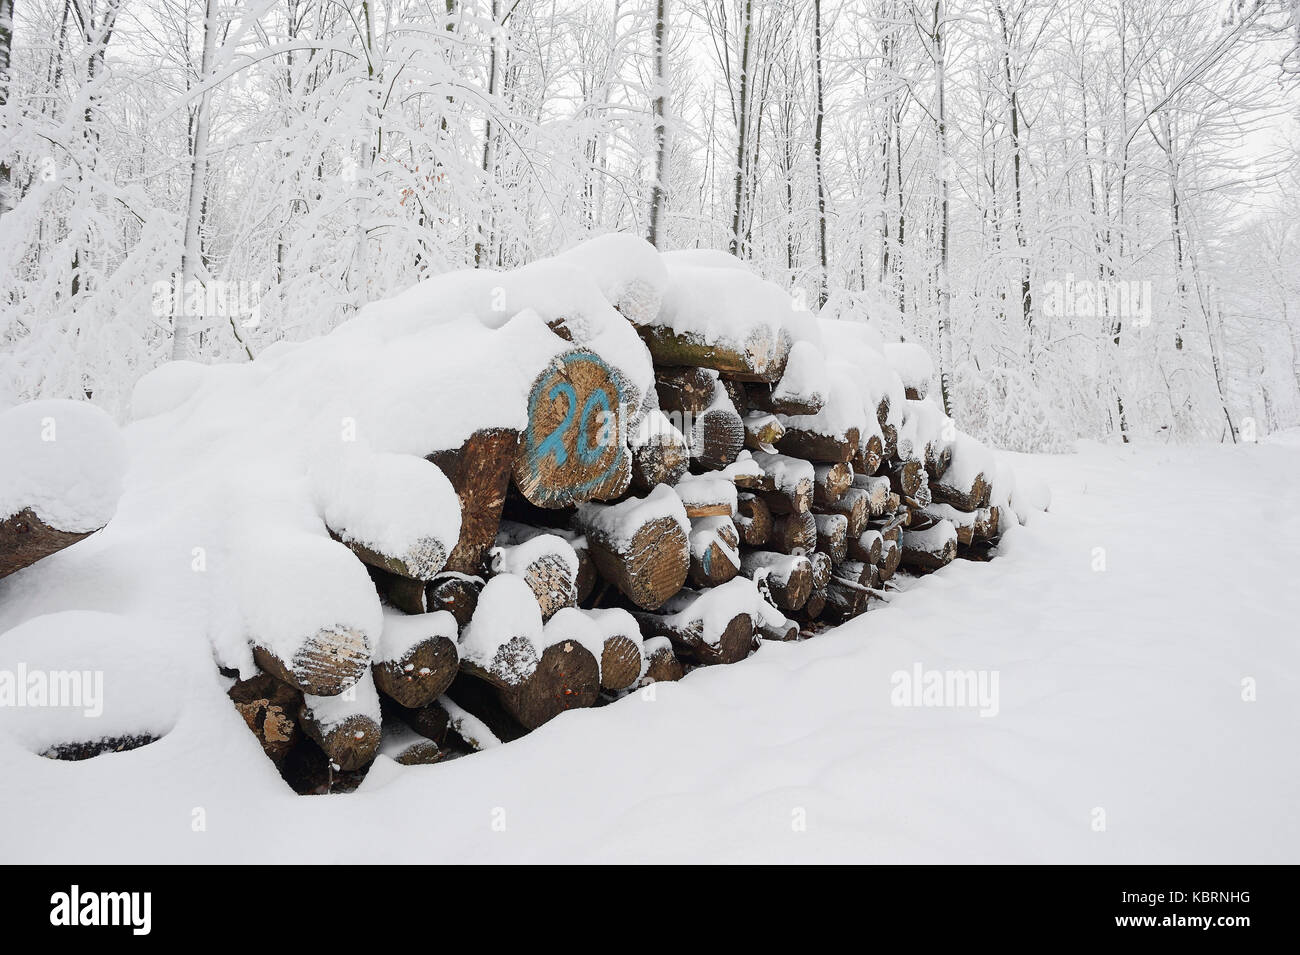 Pile of wood in winter, North Rhine-Westphalia, Germany | Holzstapel im Winter, Nordrhein-Westfalen, Deutschland Stock Photo